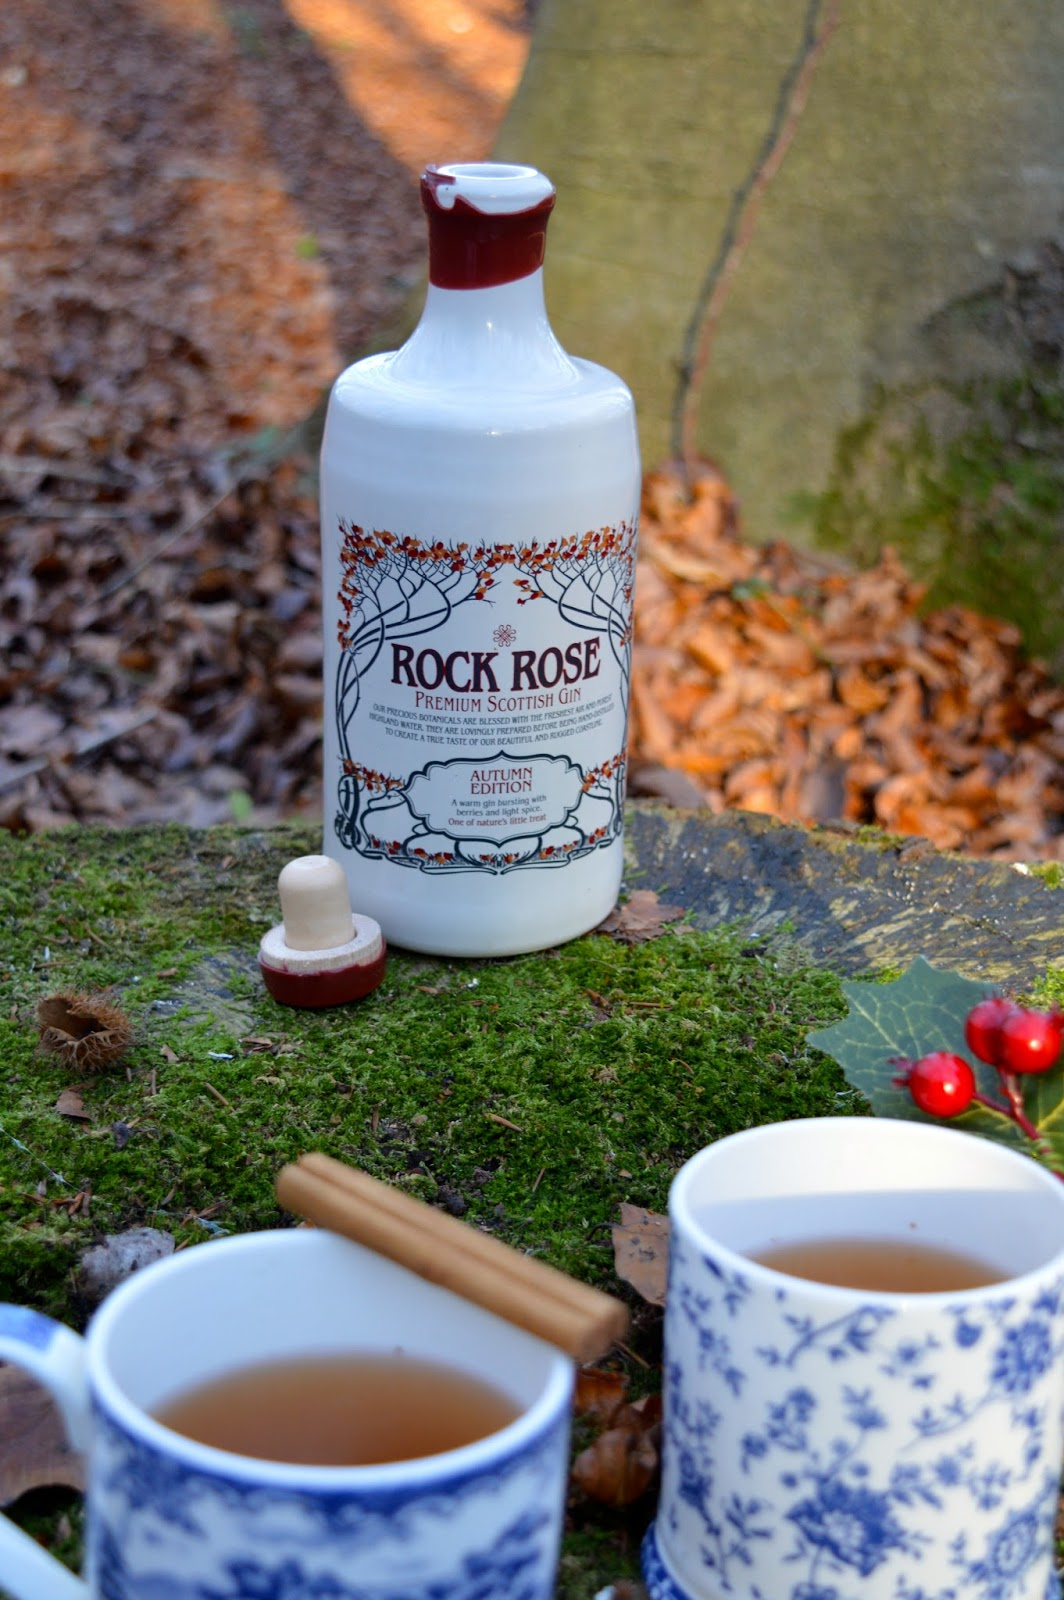 Hot Spiced Gin Cocktails recipe, Rock Rose Gin, Dalry Rose blog, UK lifestyle blog, Hampshire bloggers, food blog, festive cocktails, hot cocktails